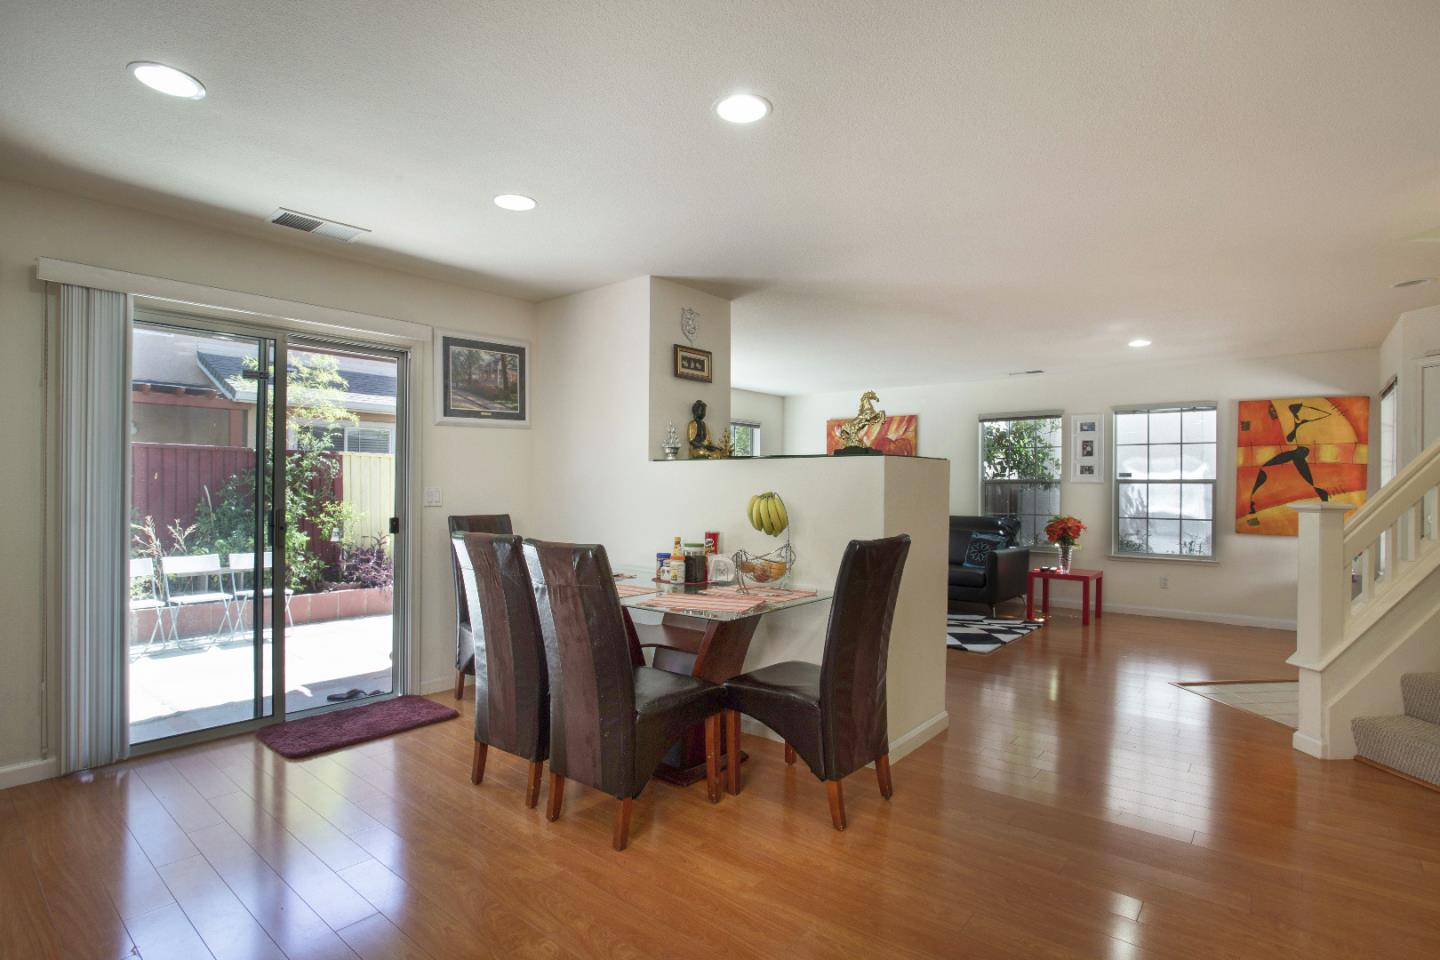 Additional photo for property listing at 1575 Sawgrass Drive  San Jose, California 95116 United States